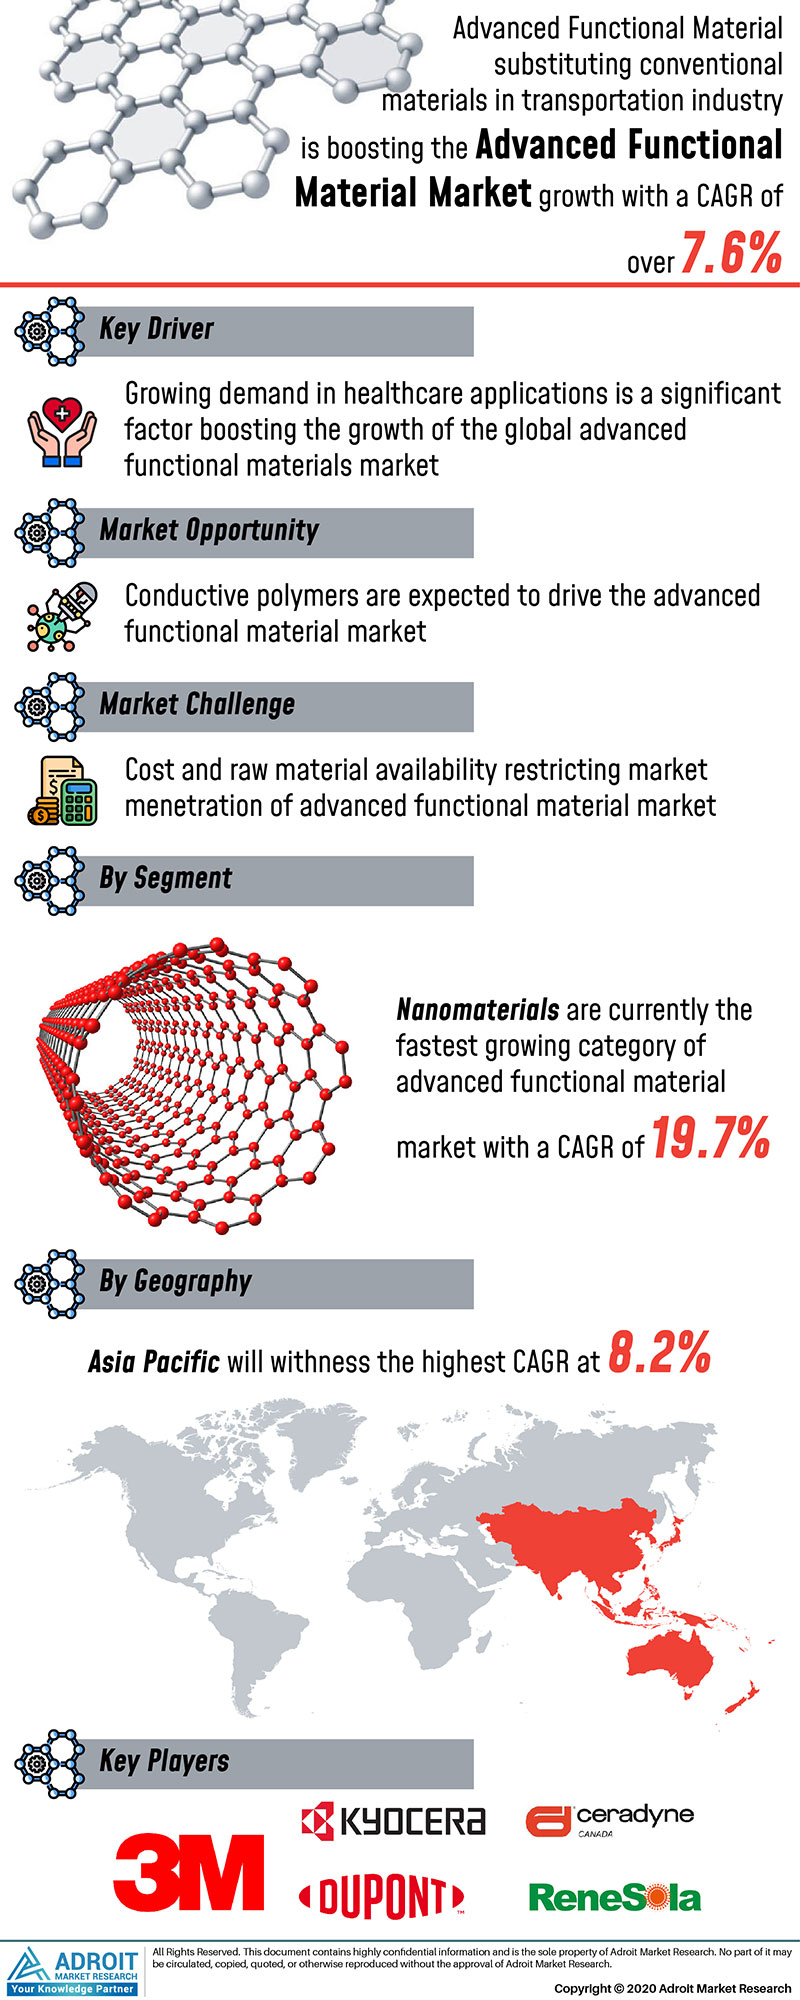 Advanced Functional Materials Market Size 2017 By Application, Product, Region and Forecast 2019 to 2025